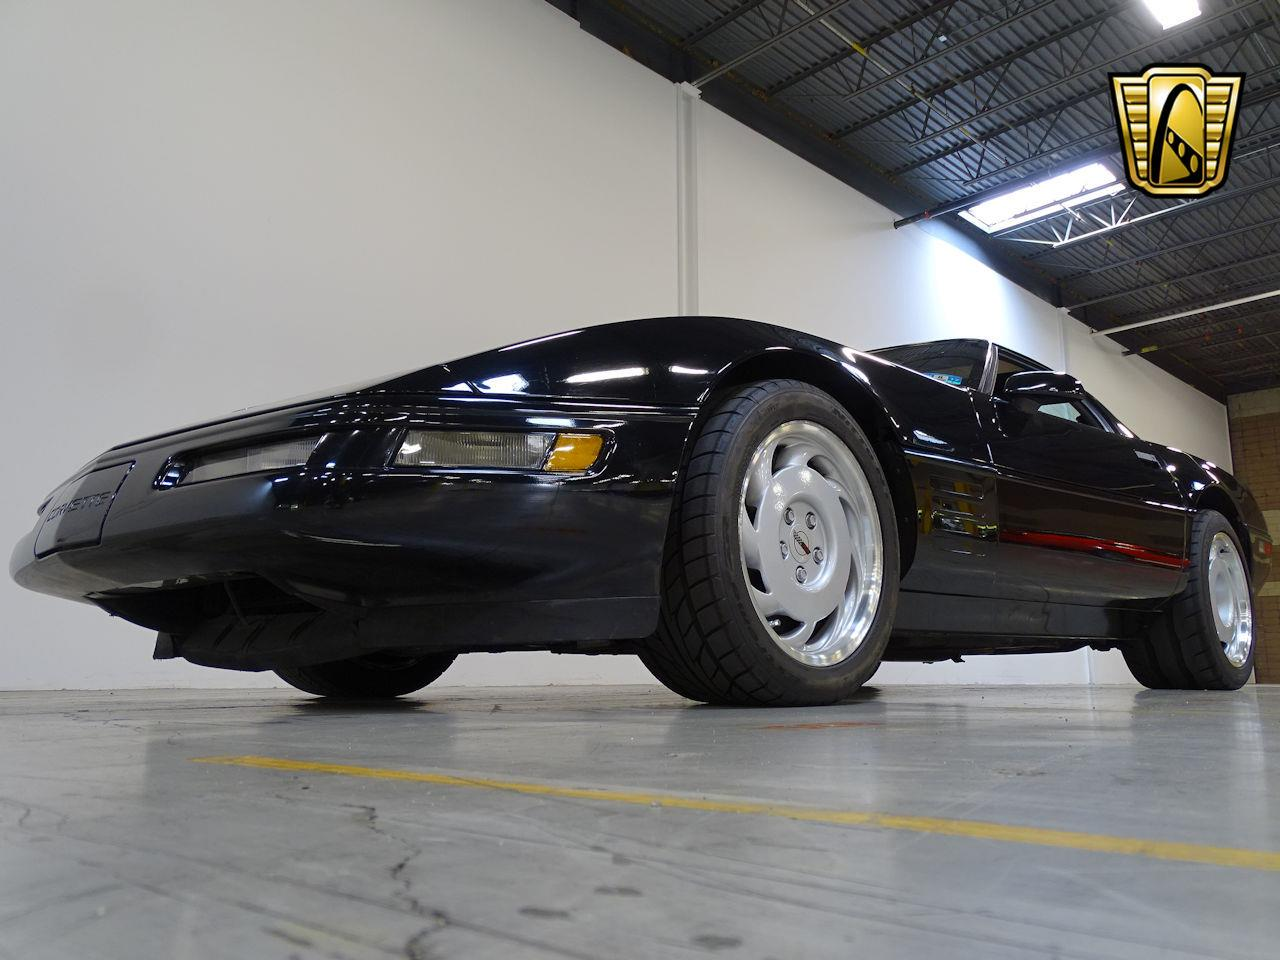 Large Picture of '91 Chevrolet Corvette located in New Jersey Offered by Gateway Classic Cars - Philadelphia - L1SC